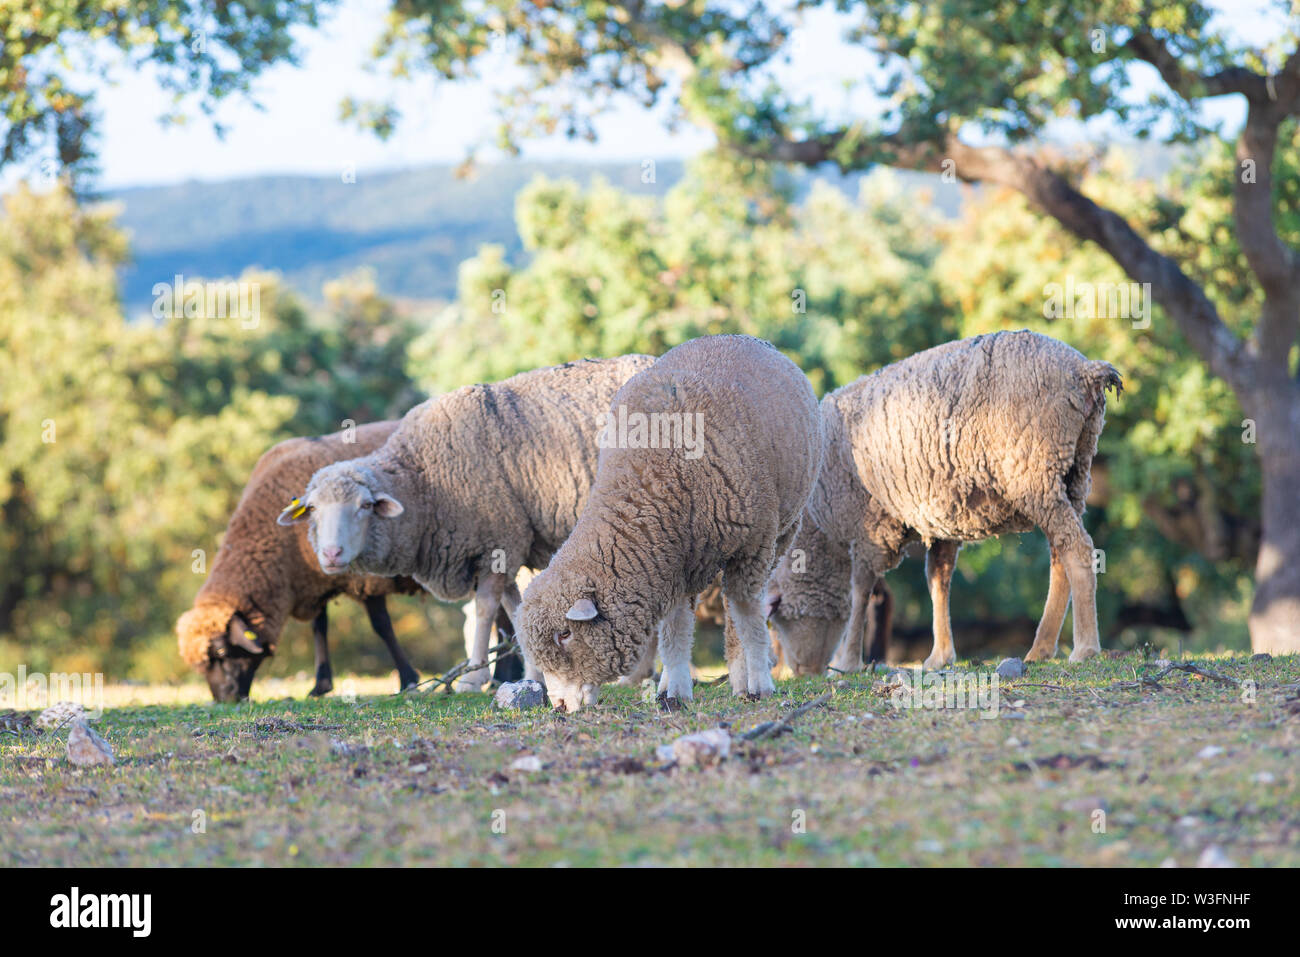 sheeps grazing in the Field - Stock Image